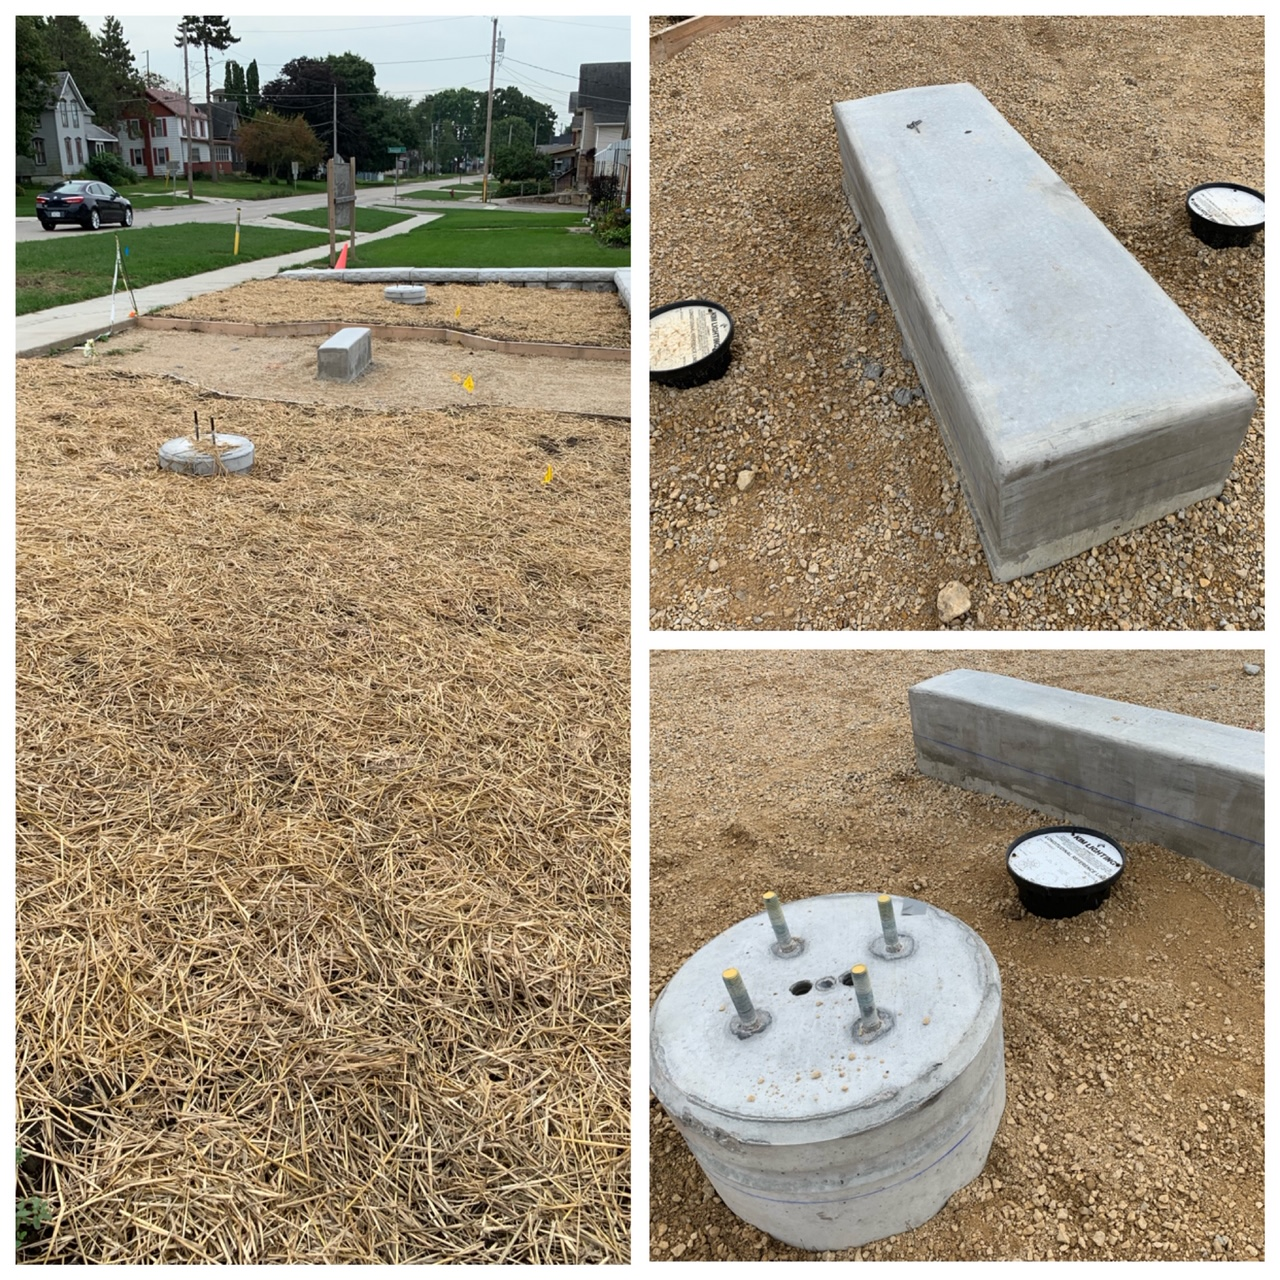 In-ground Lighting boxes and grass seed planted.